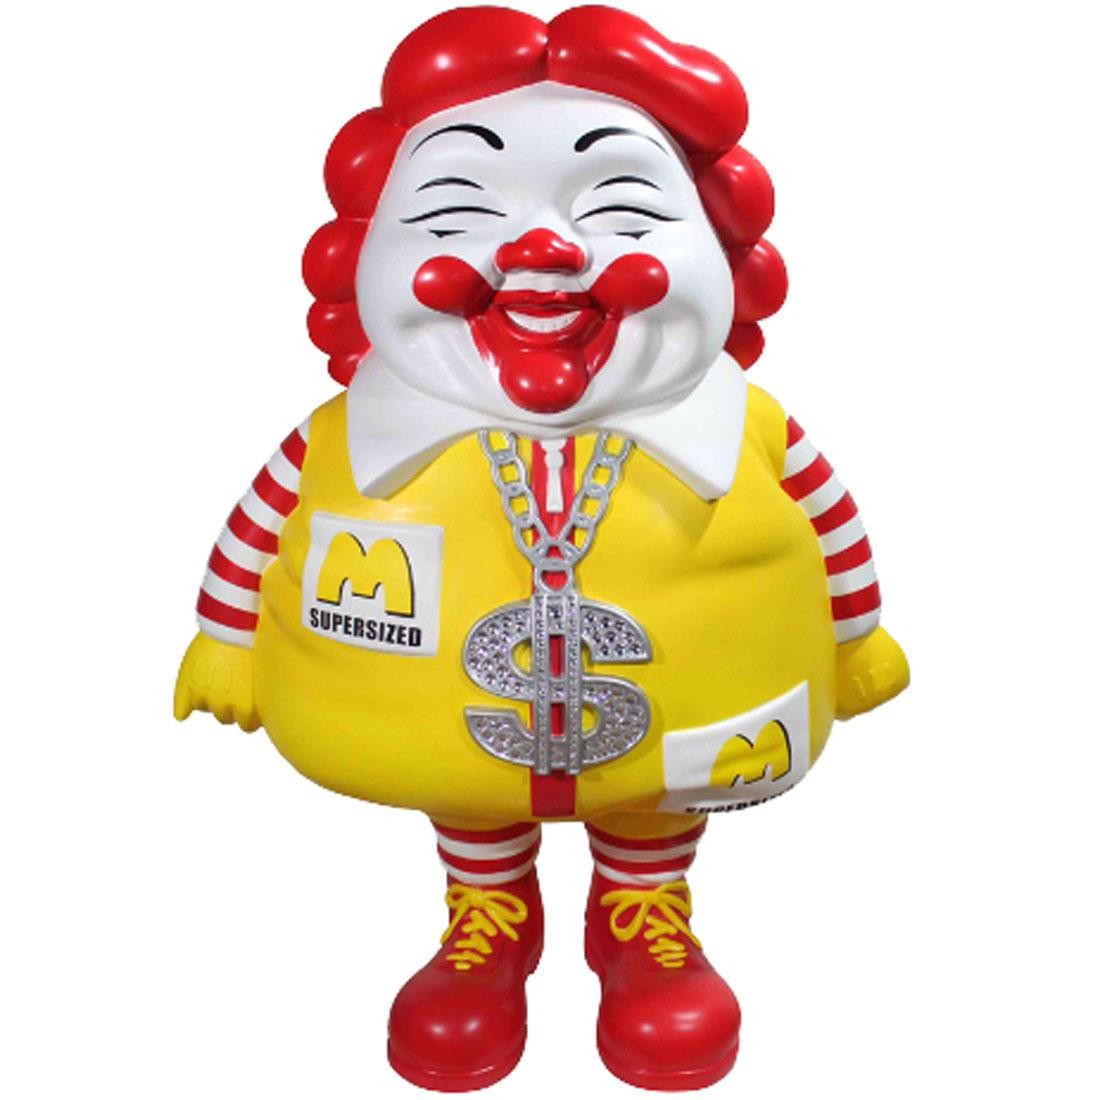 MINDstyle x Ron English McSupersized 4 Foot Statue (yellow / red)